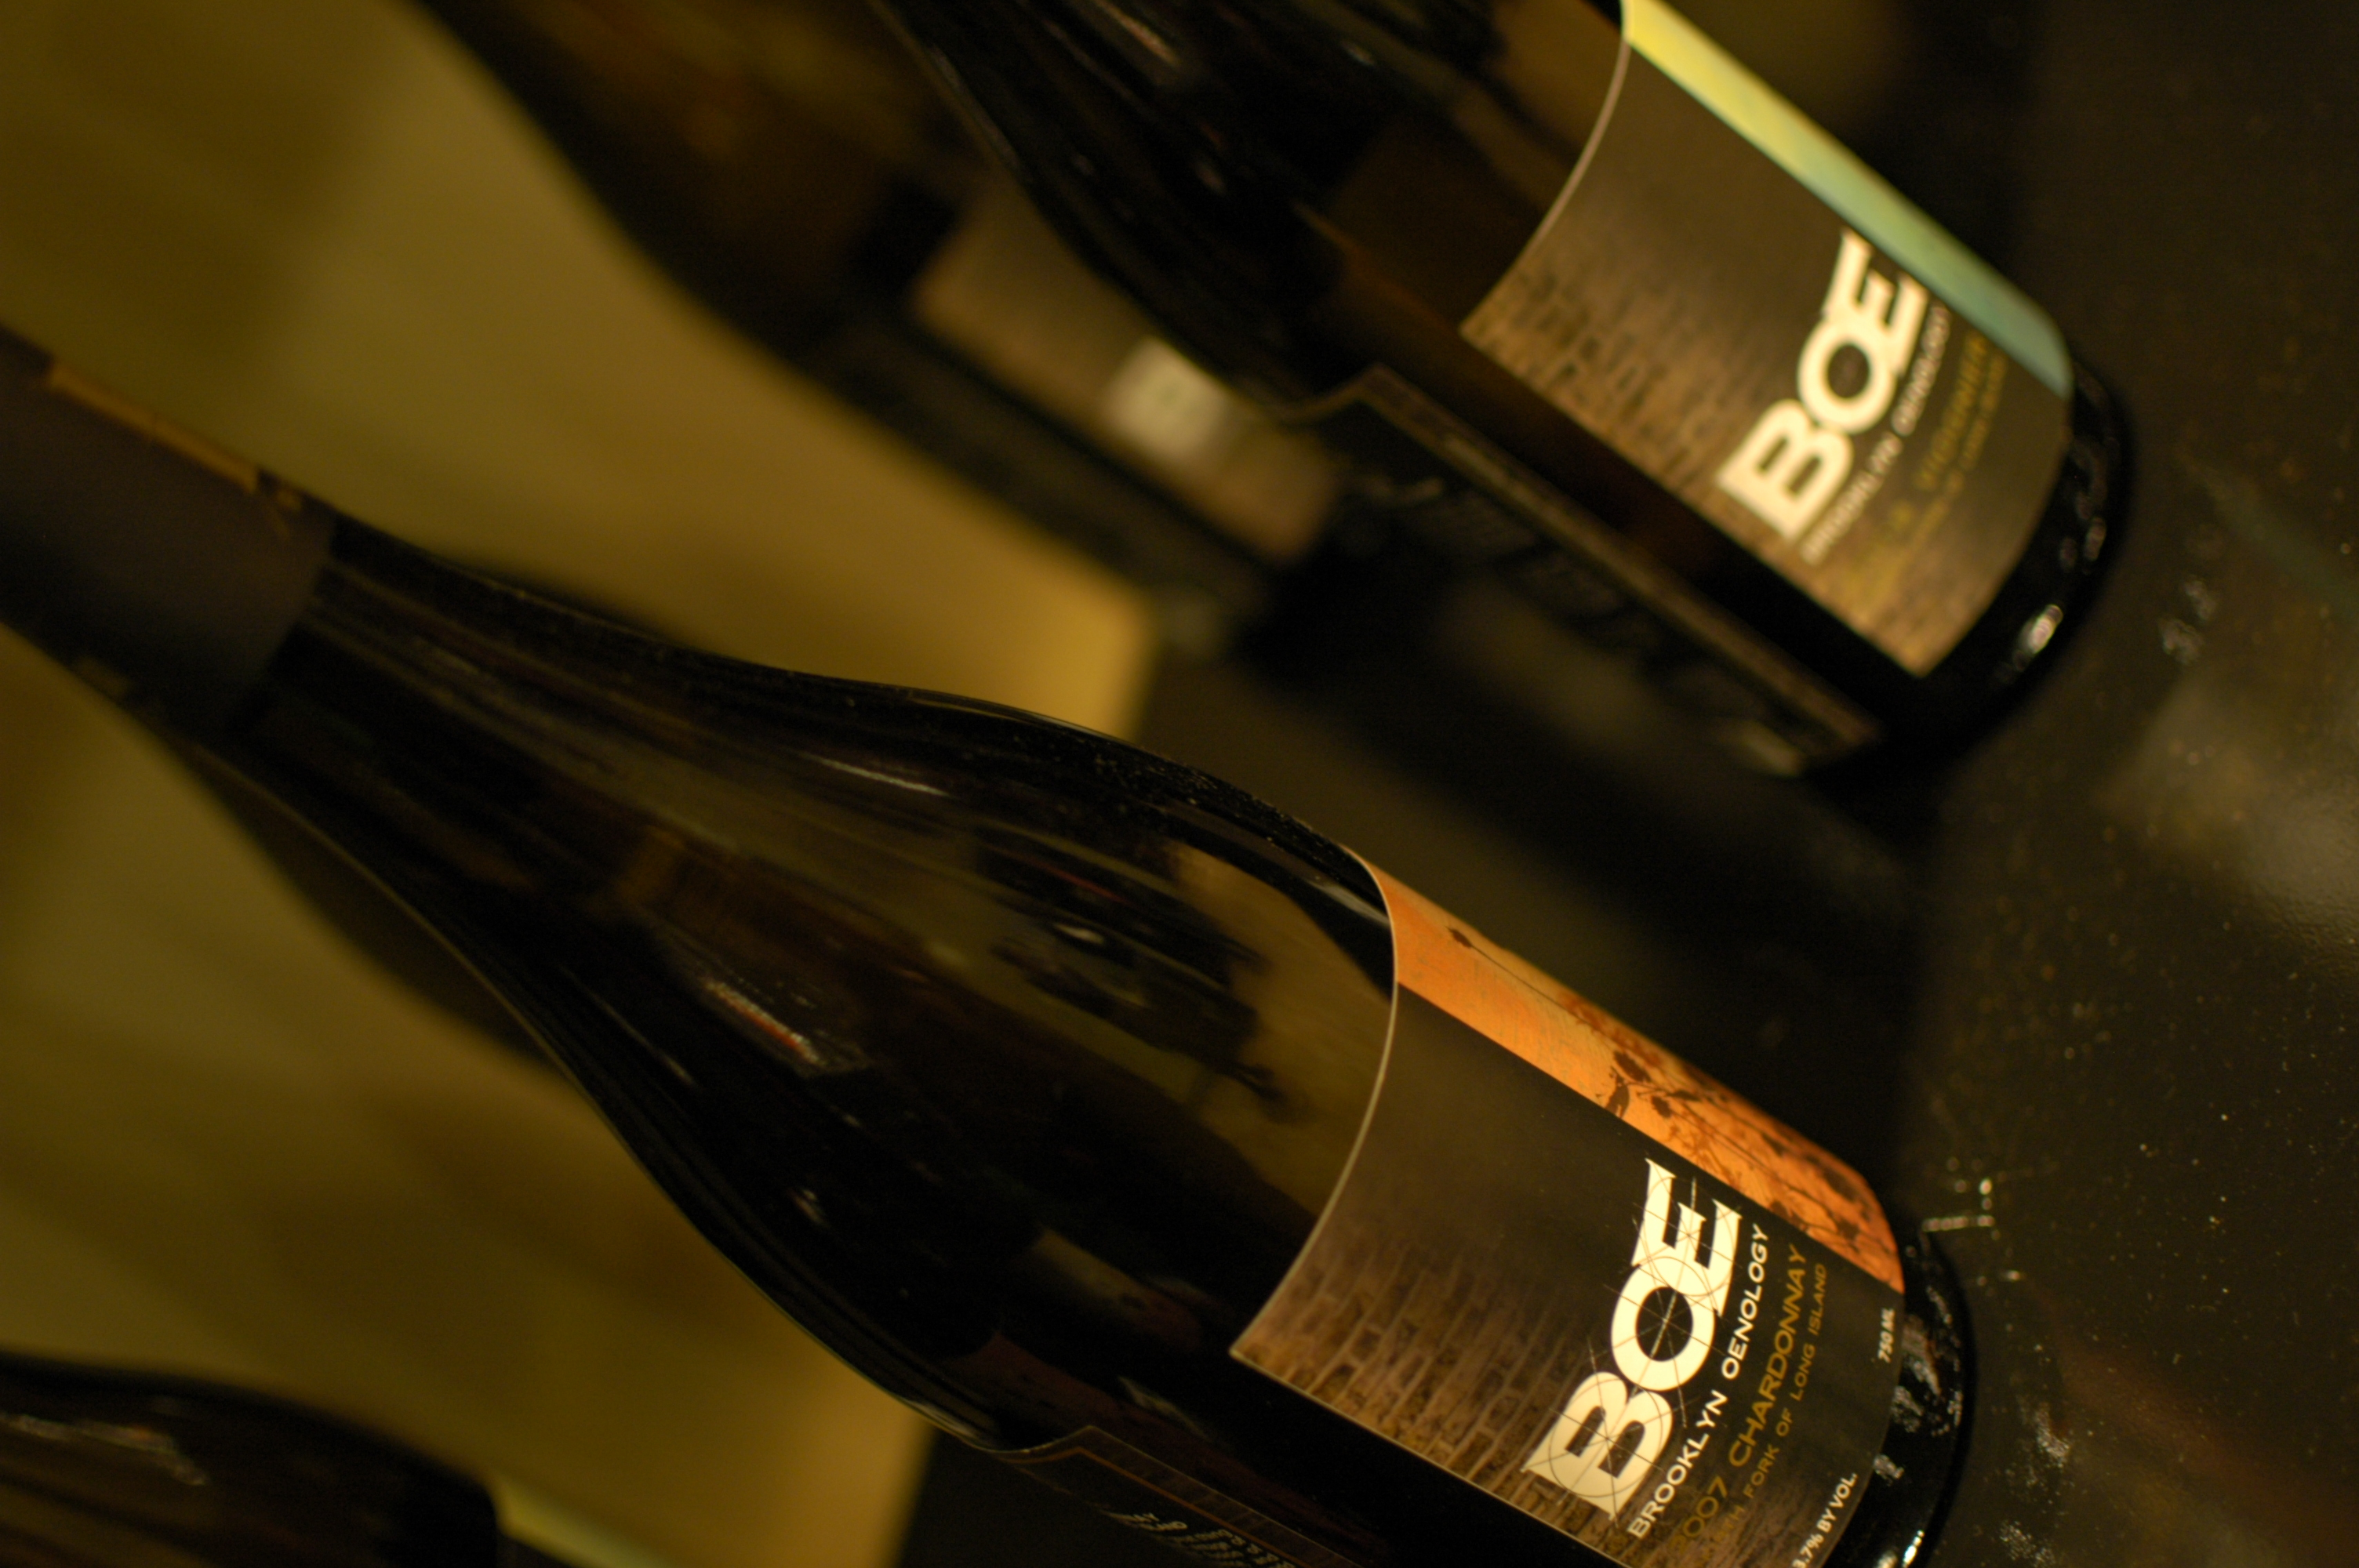 Local Brand Brooklyn Genology sold at the Cellars! & Thirsty Bed-Stuy: Breukelen Cellars Opens Its Doors! | Bed Stuy ...